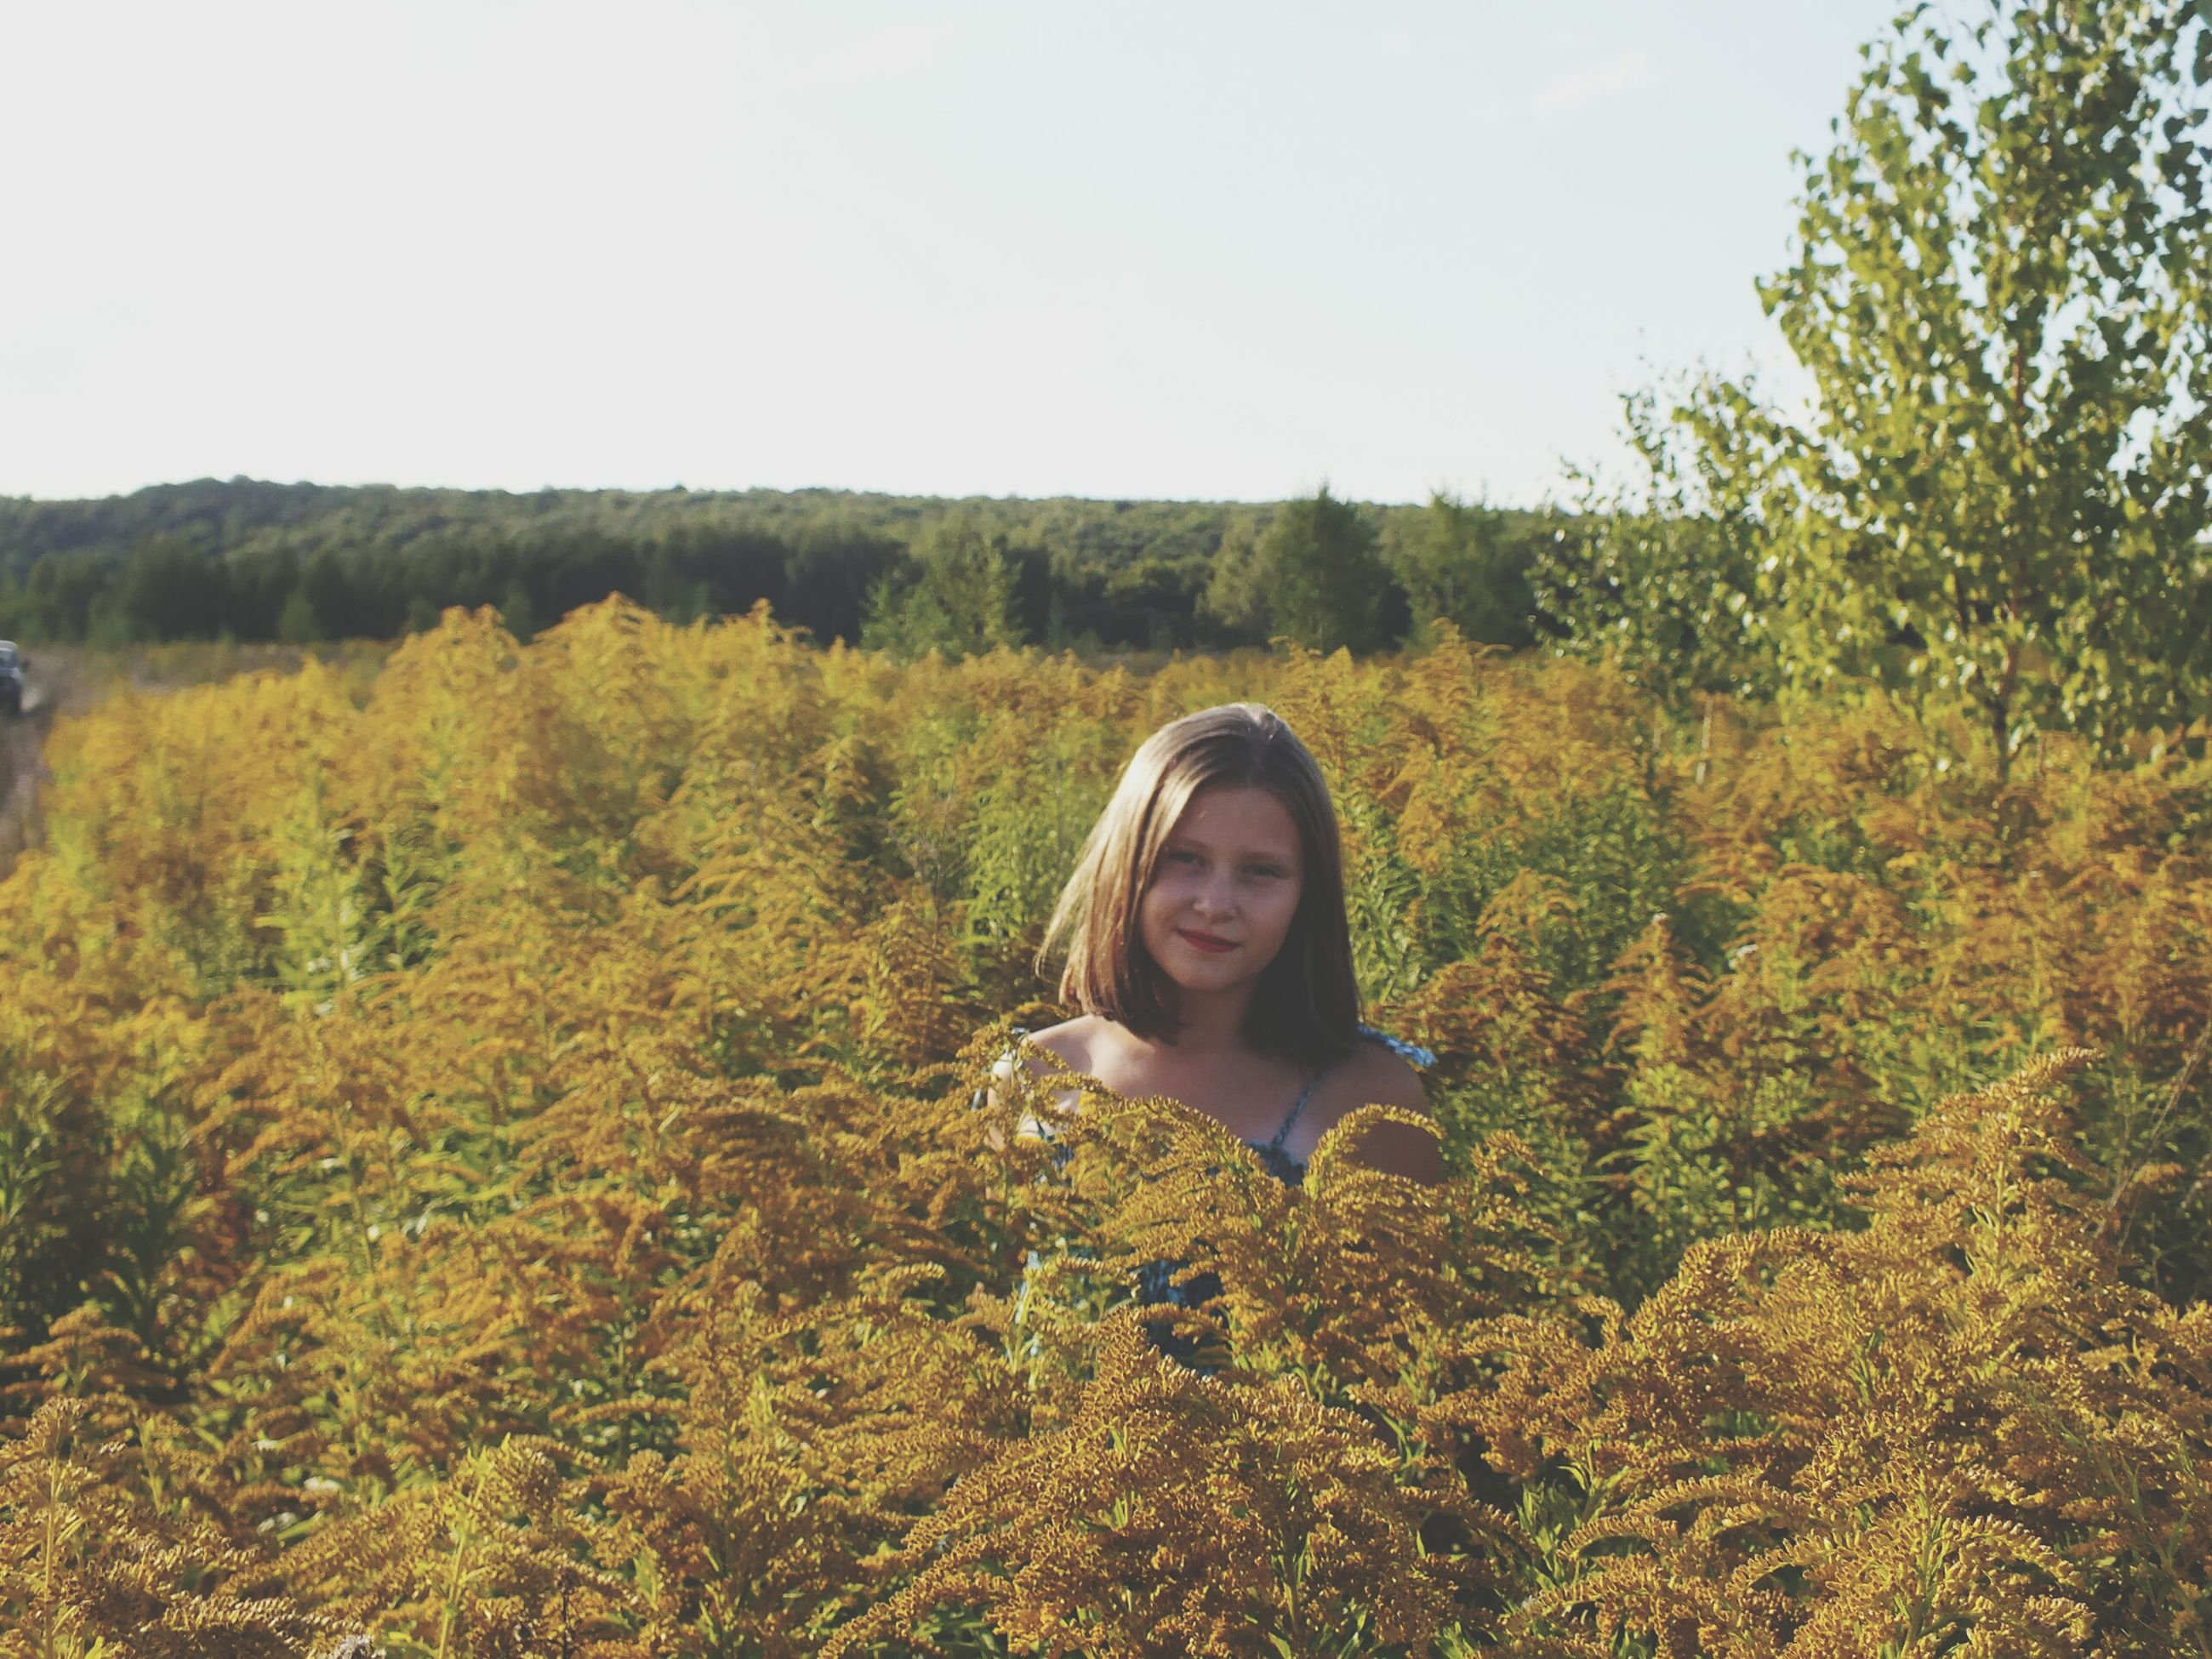 young adult, person, lifestyles, looking at camera, portrait, leisure activity, casual clothing, field, young women, tree, growth, front view, smiling, plant, standing, nature, clear sky, grass